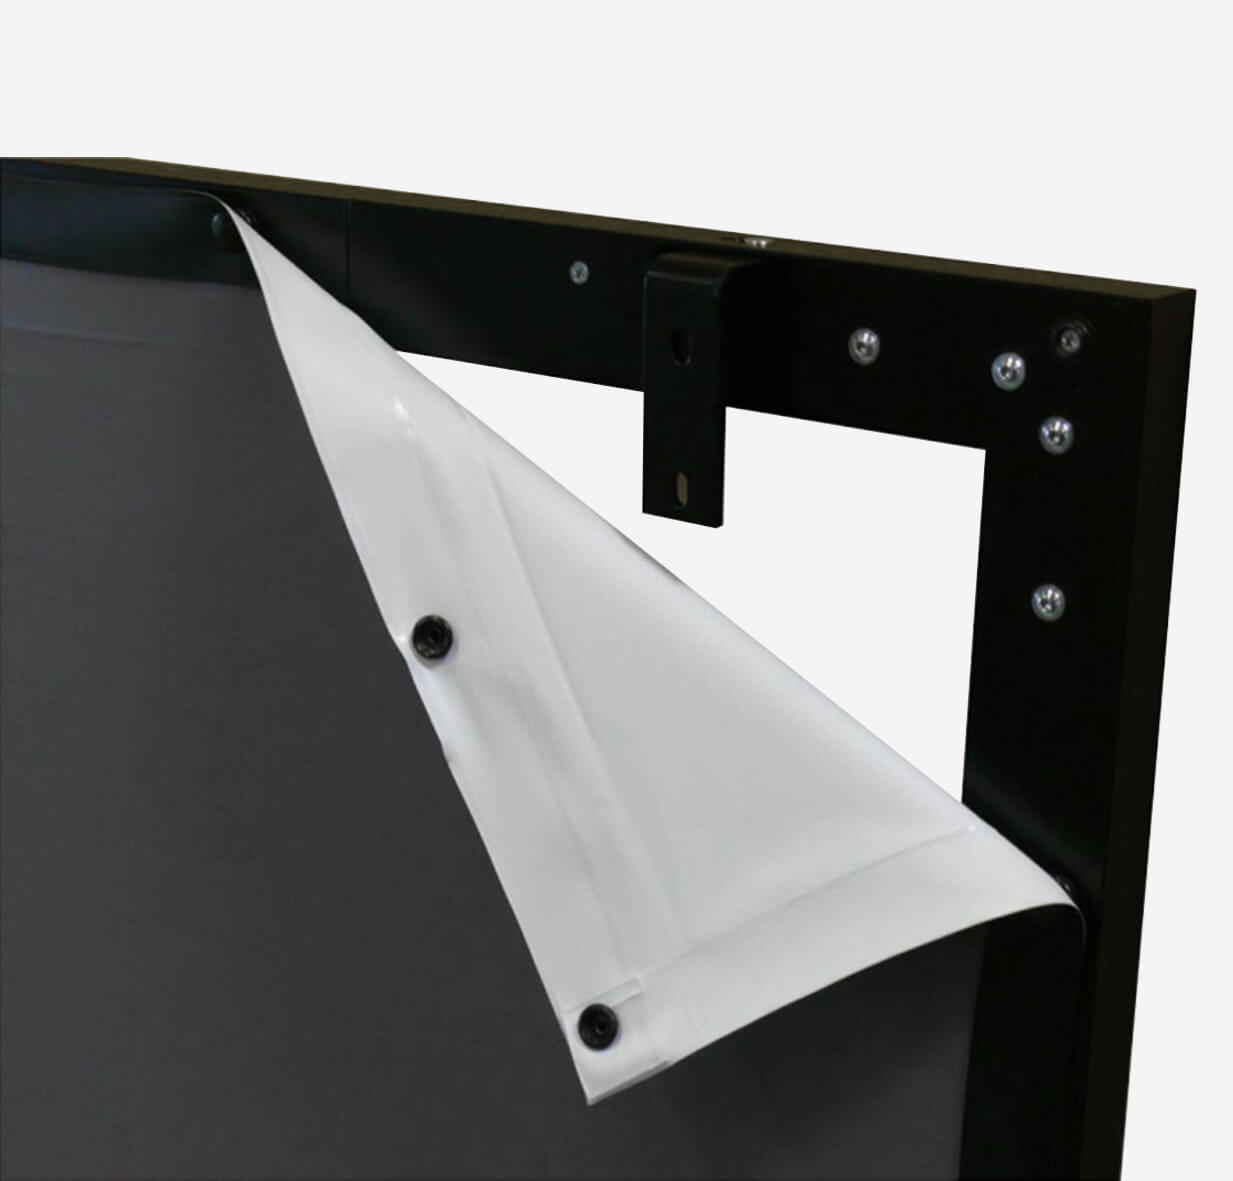 Brillant D Projection Screen For Conferences And Your